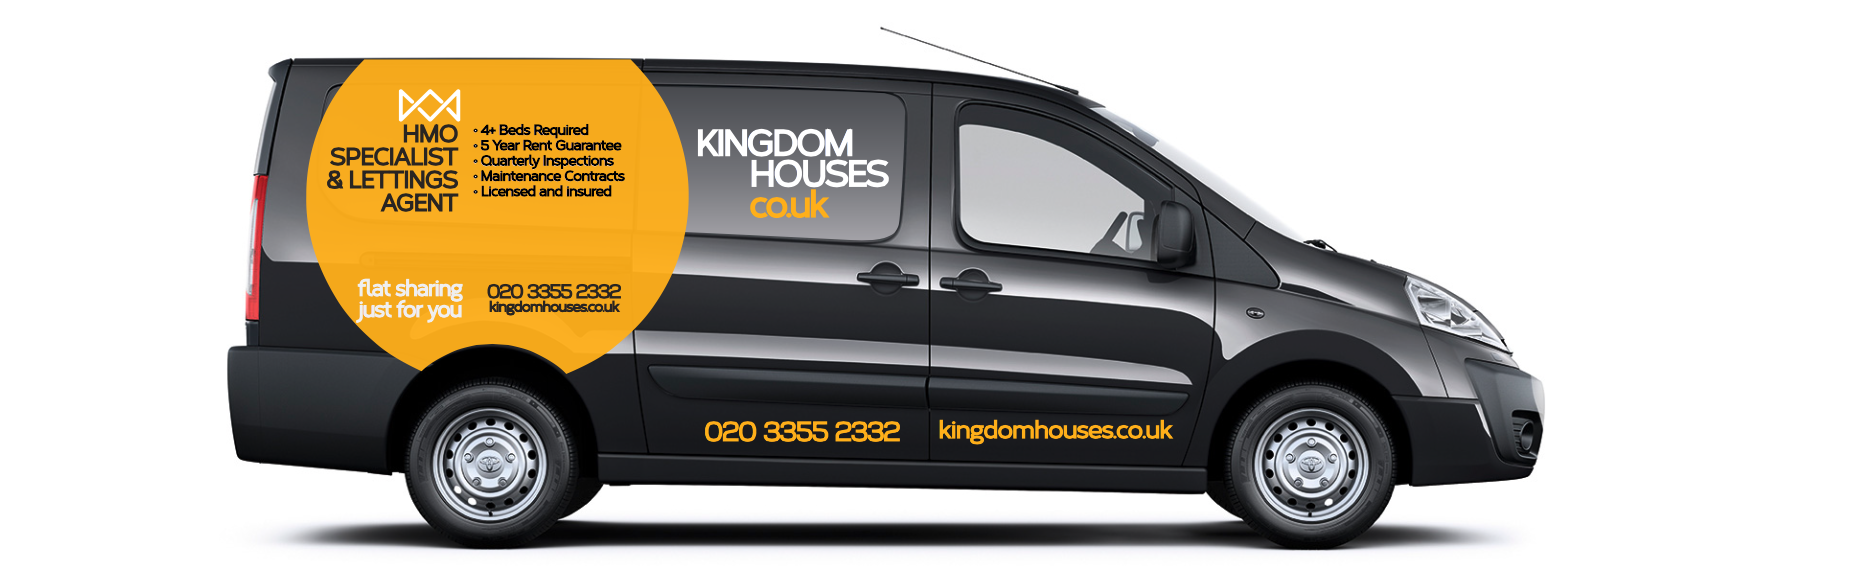 Kingdom Houses Proace Branding